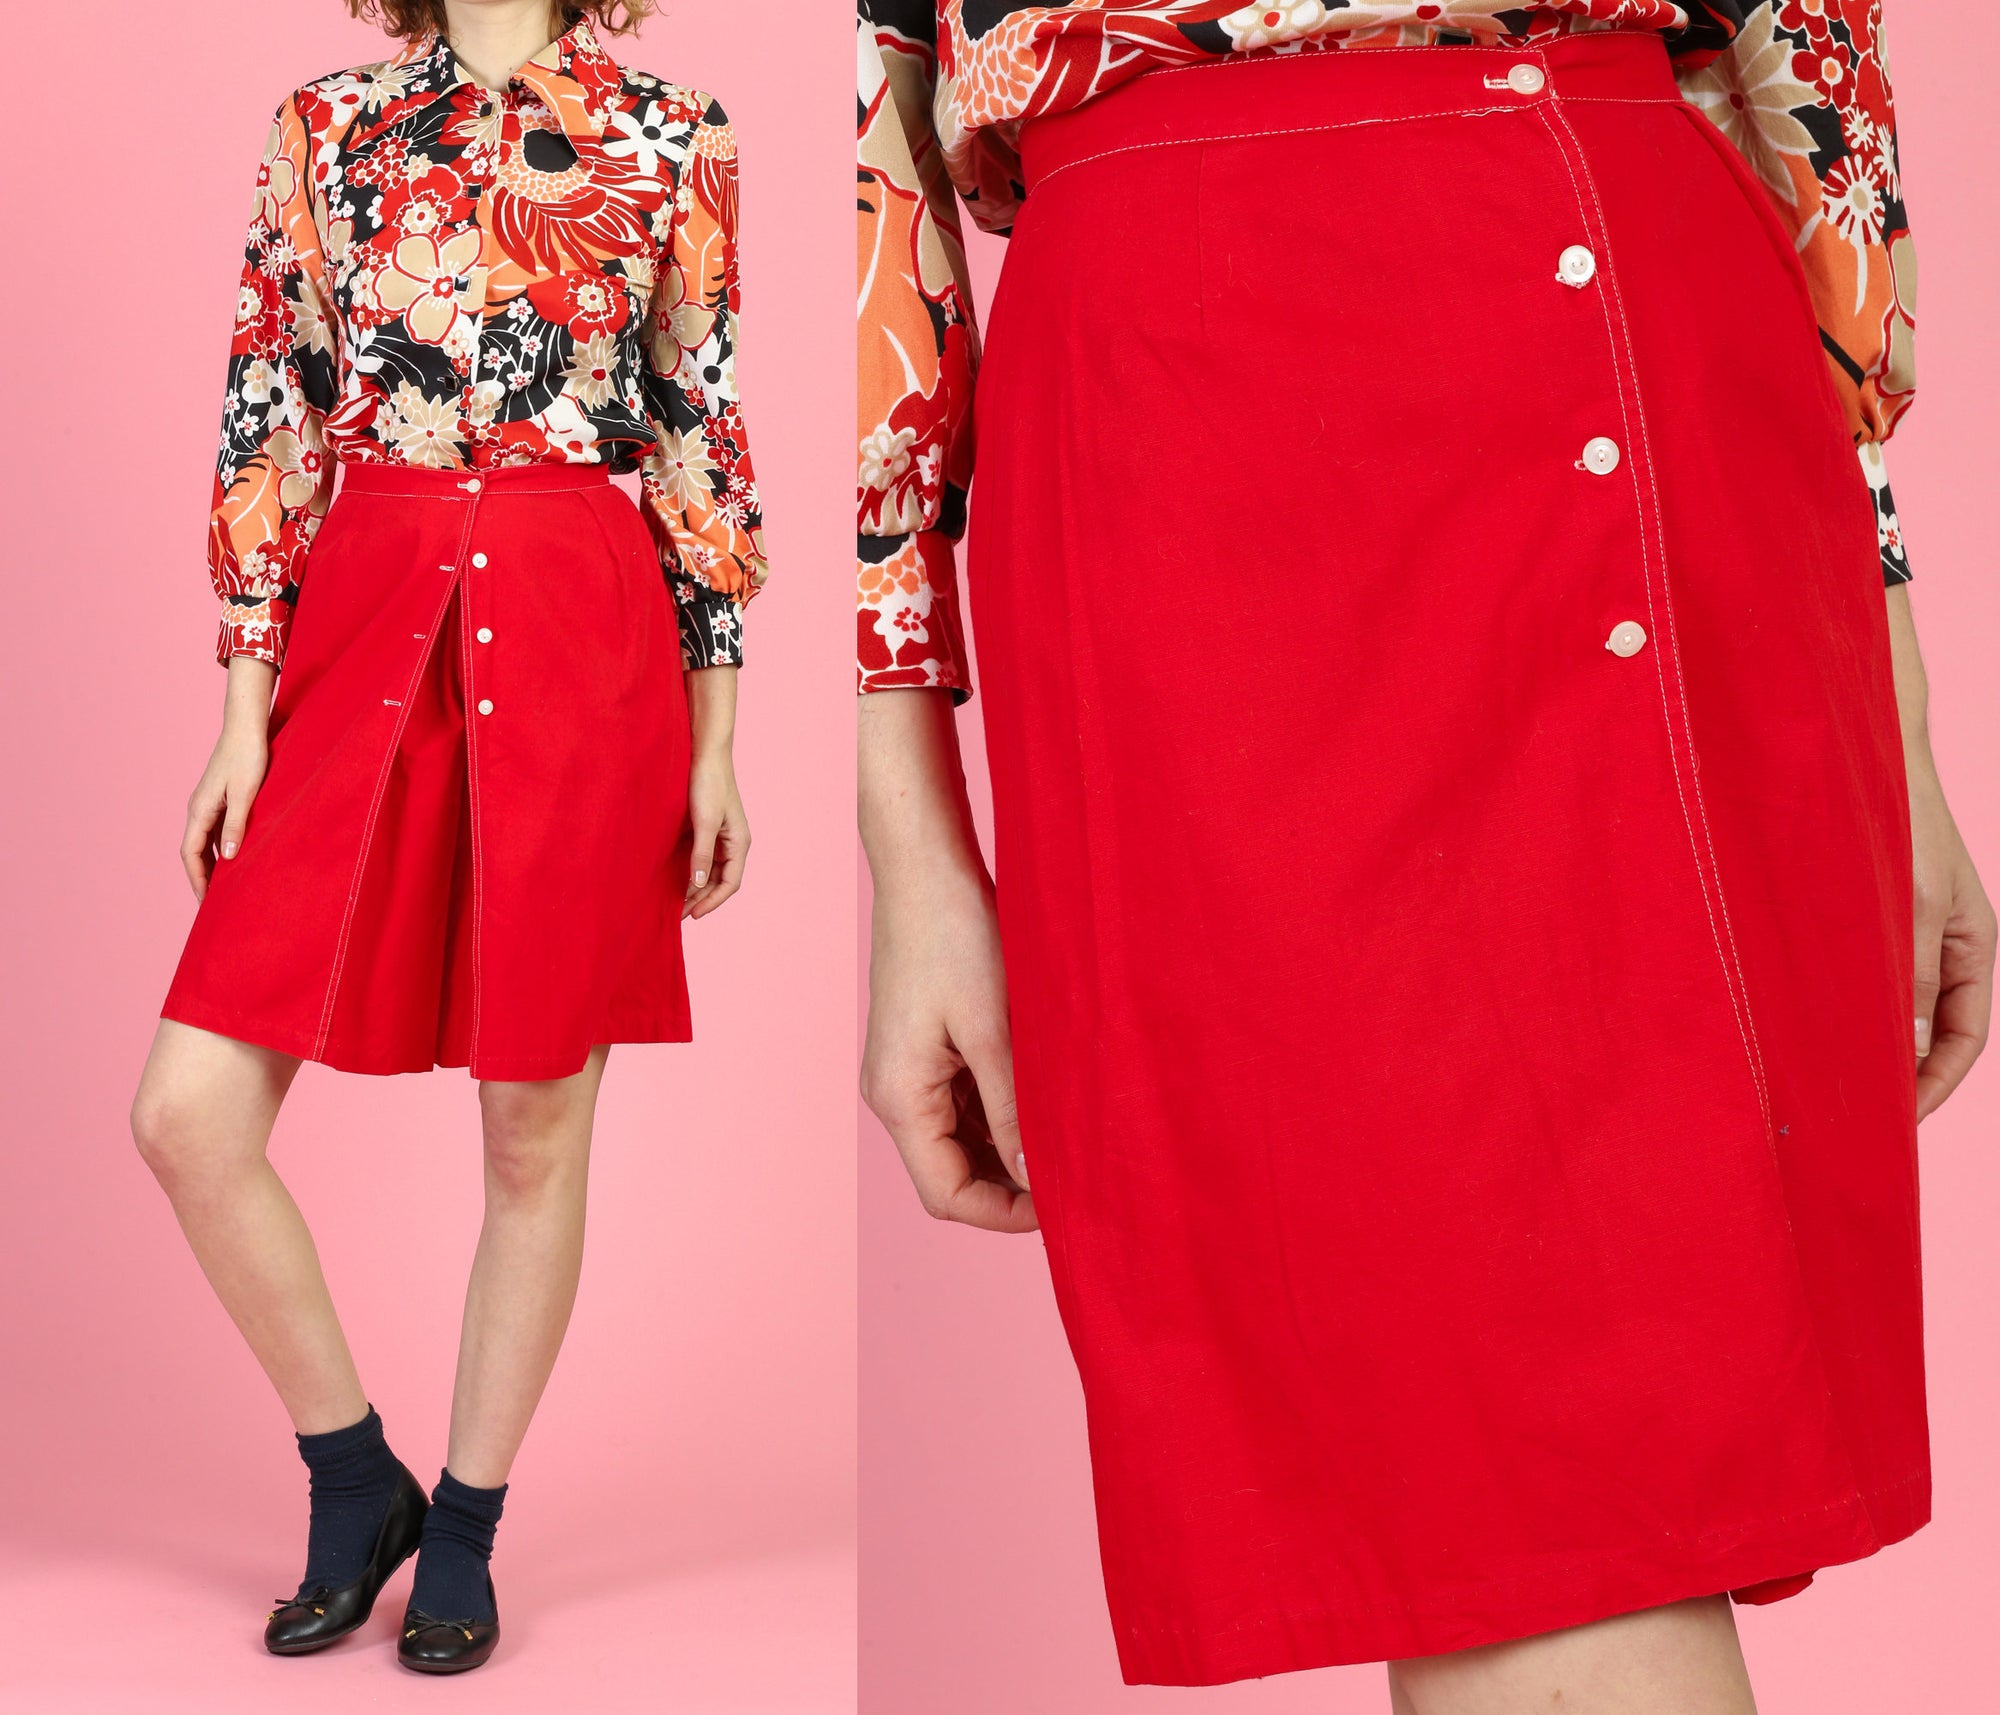 70s High Waisted Red Skort - XS to Small